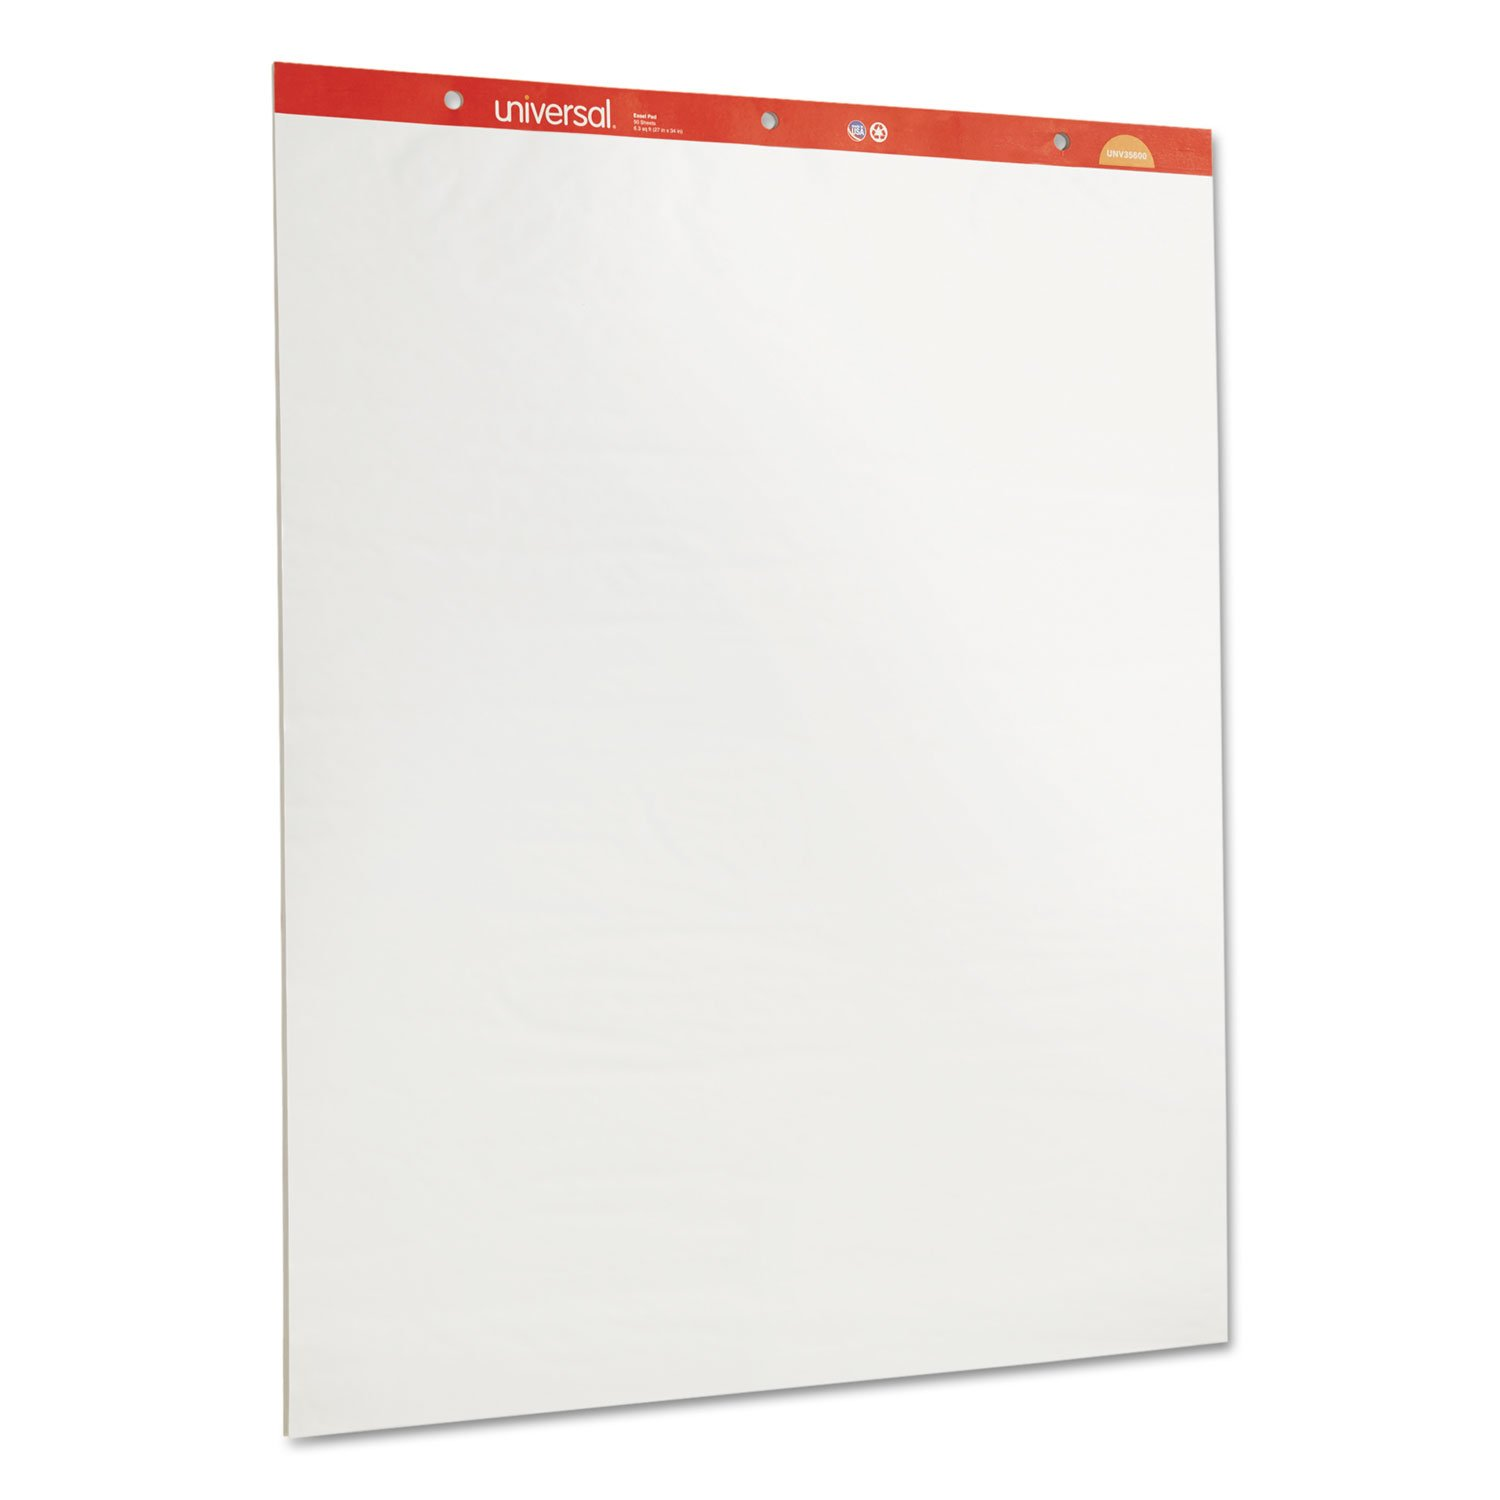 Universal 35600 Recycled Easel Pads, Unruled, 27 x 34, White, 50 Sheet (Case of 2) by Universal